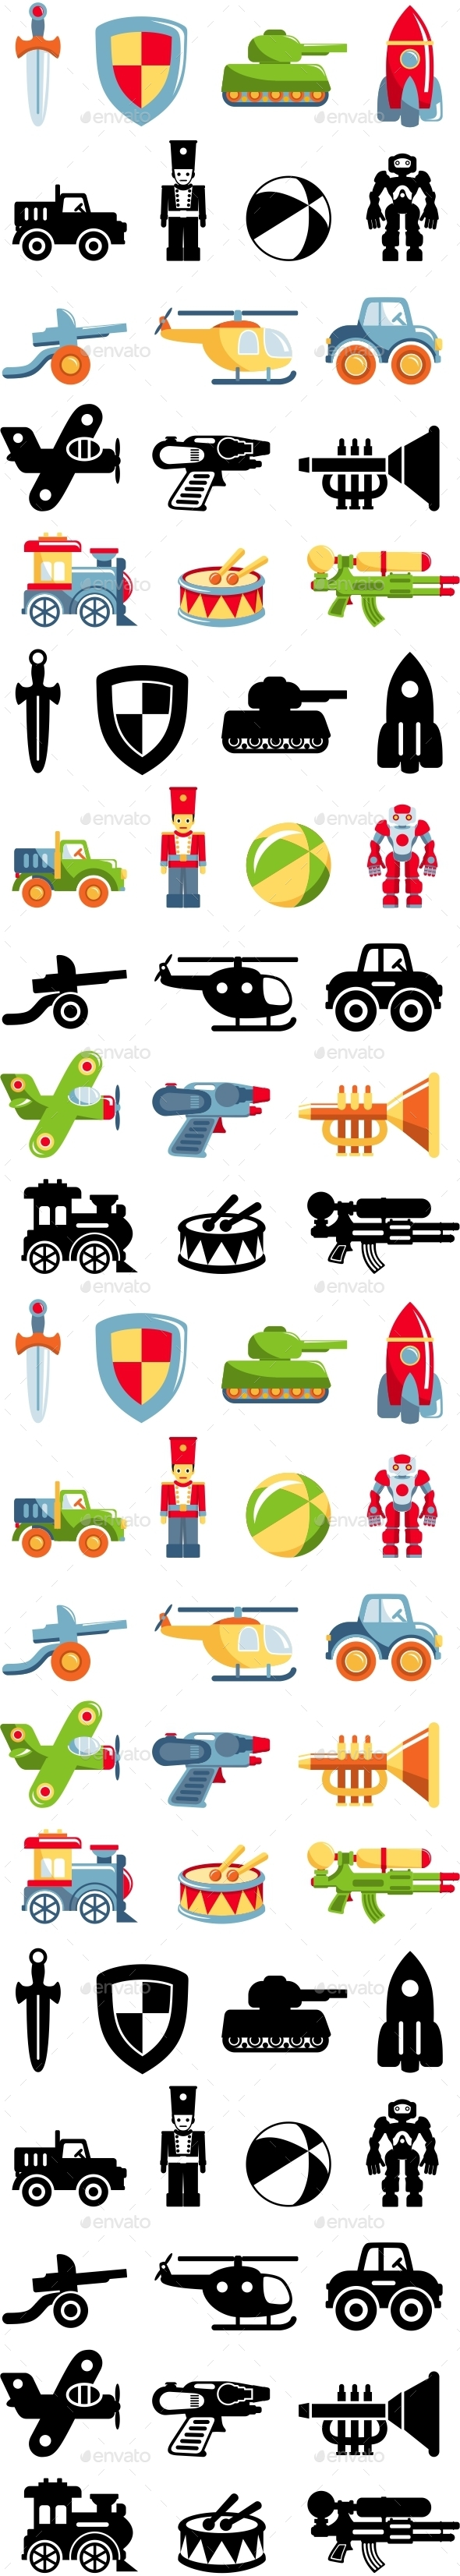 Set of Toys for Boys in Flat Style - Man-made Objects Objects